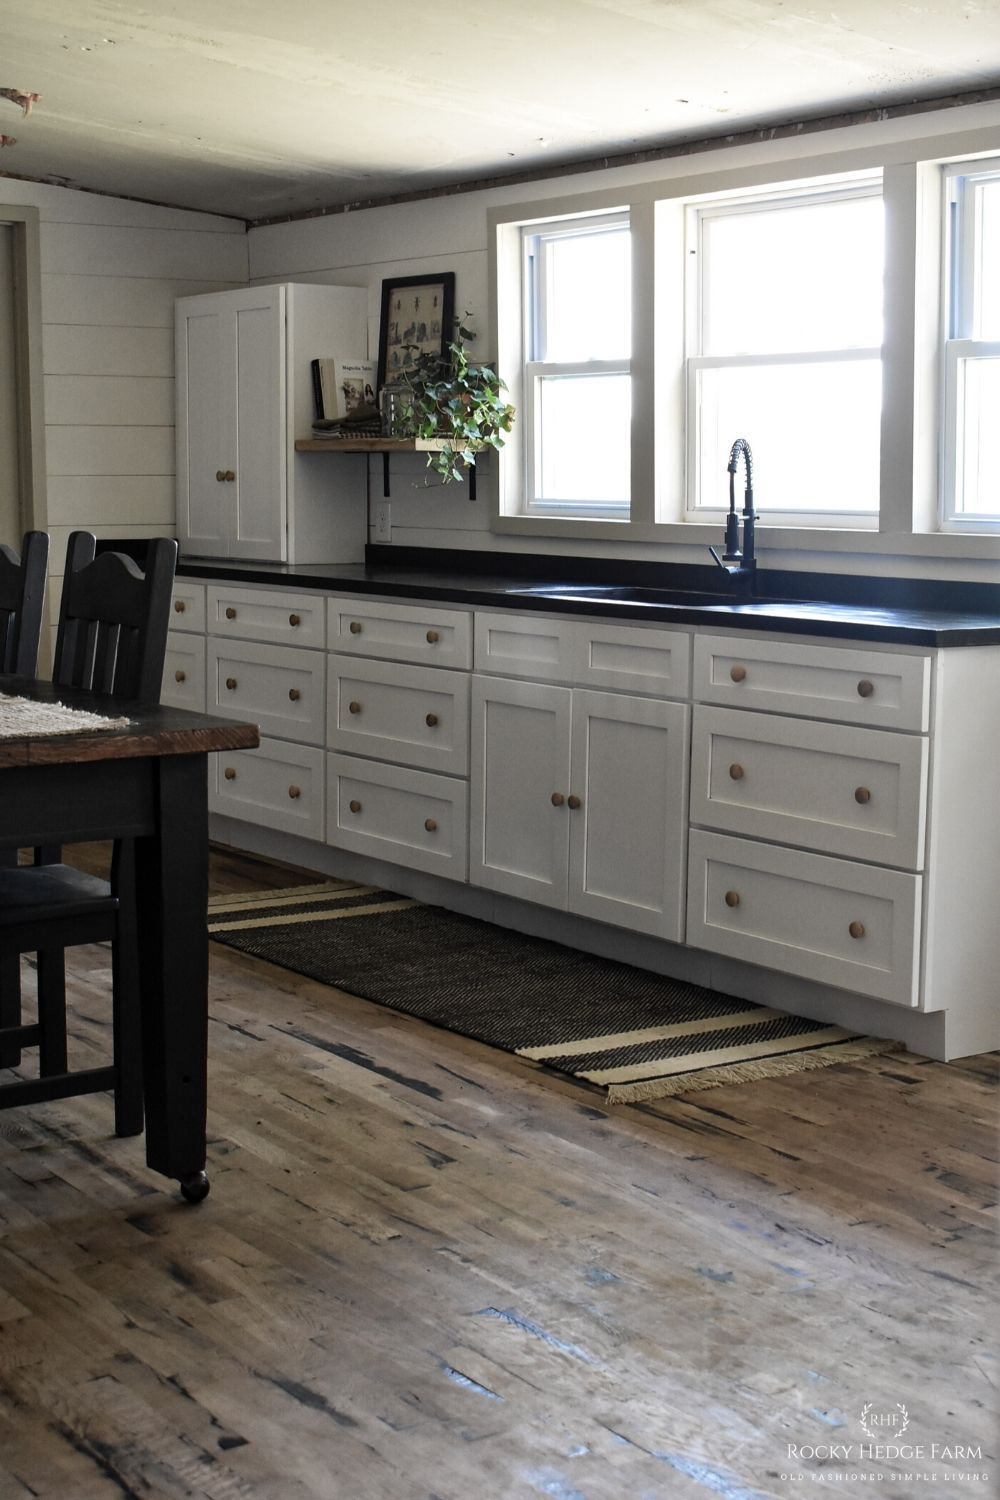 17 DIY Countertops to Update Your Kitchen this Weekend on a Budget